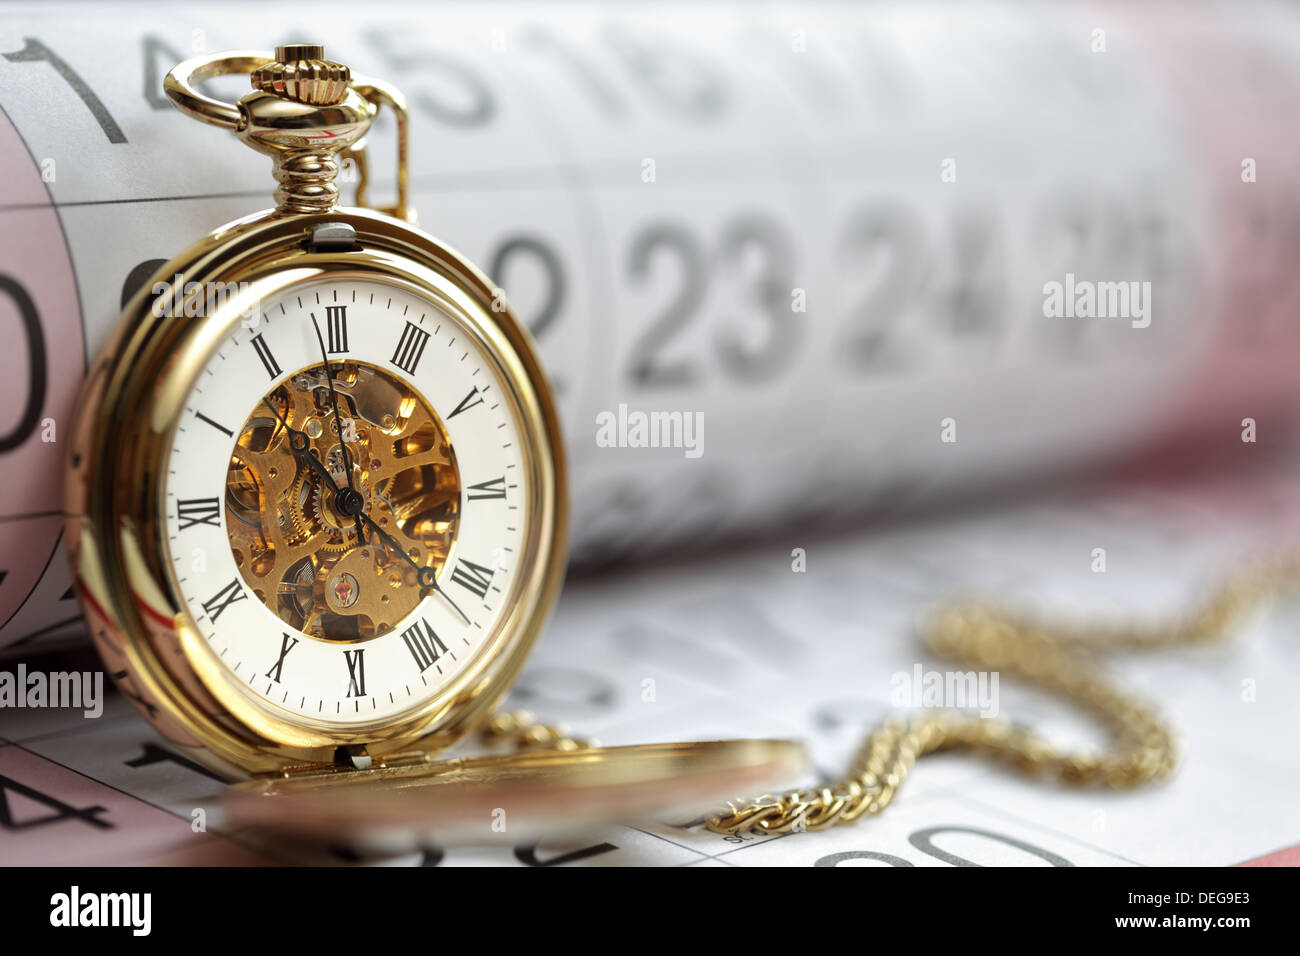 Gold pocket watch and calendar - Stock Image